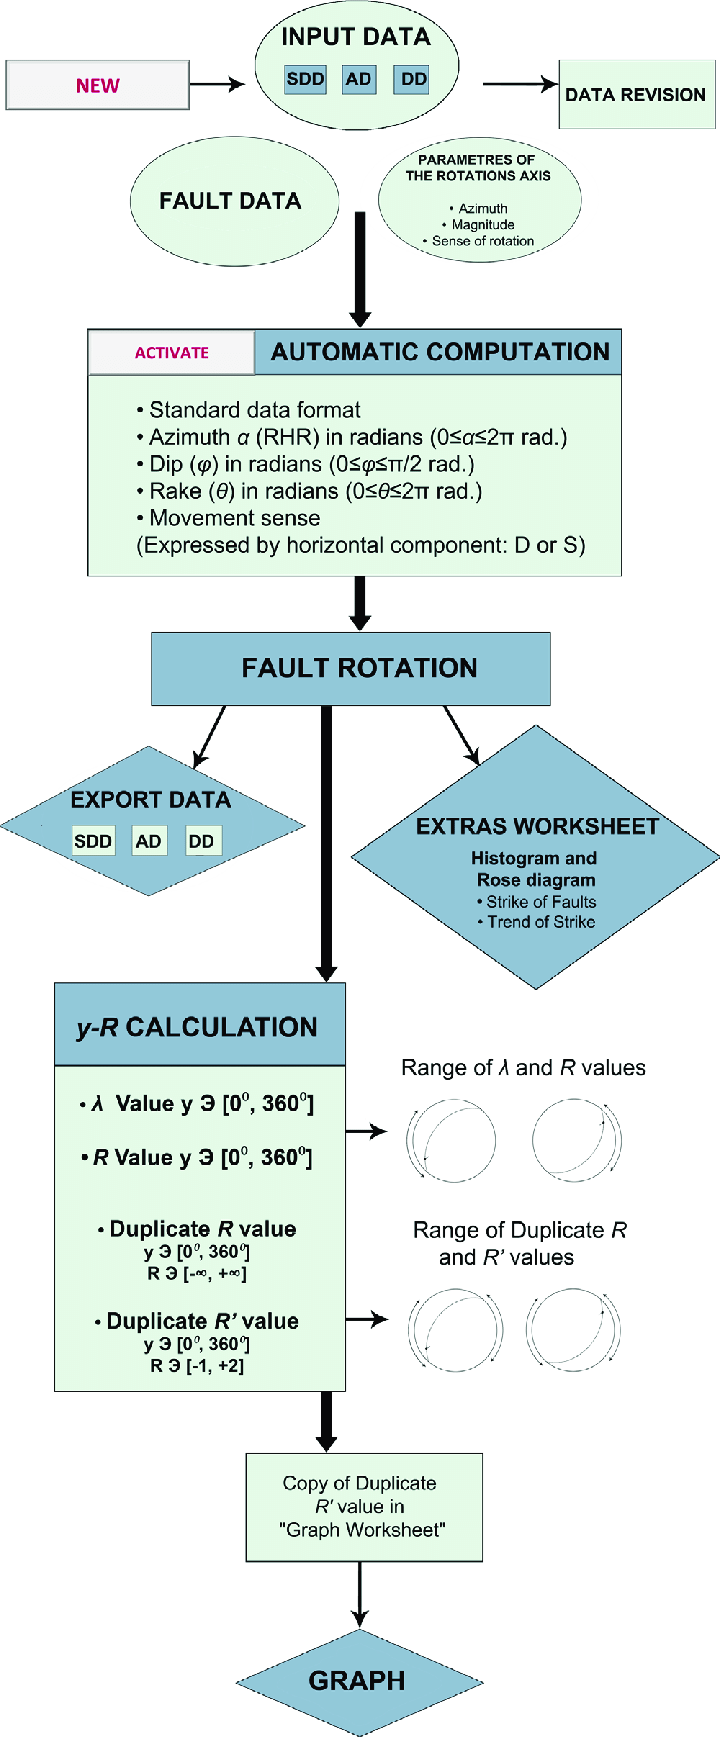 hight resolution of flow diagram showing the sequence of operations performed by the application circles indicate input data